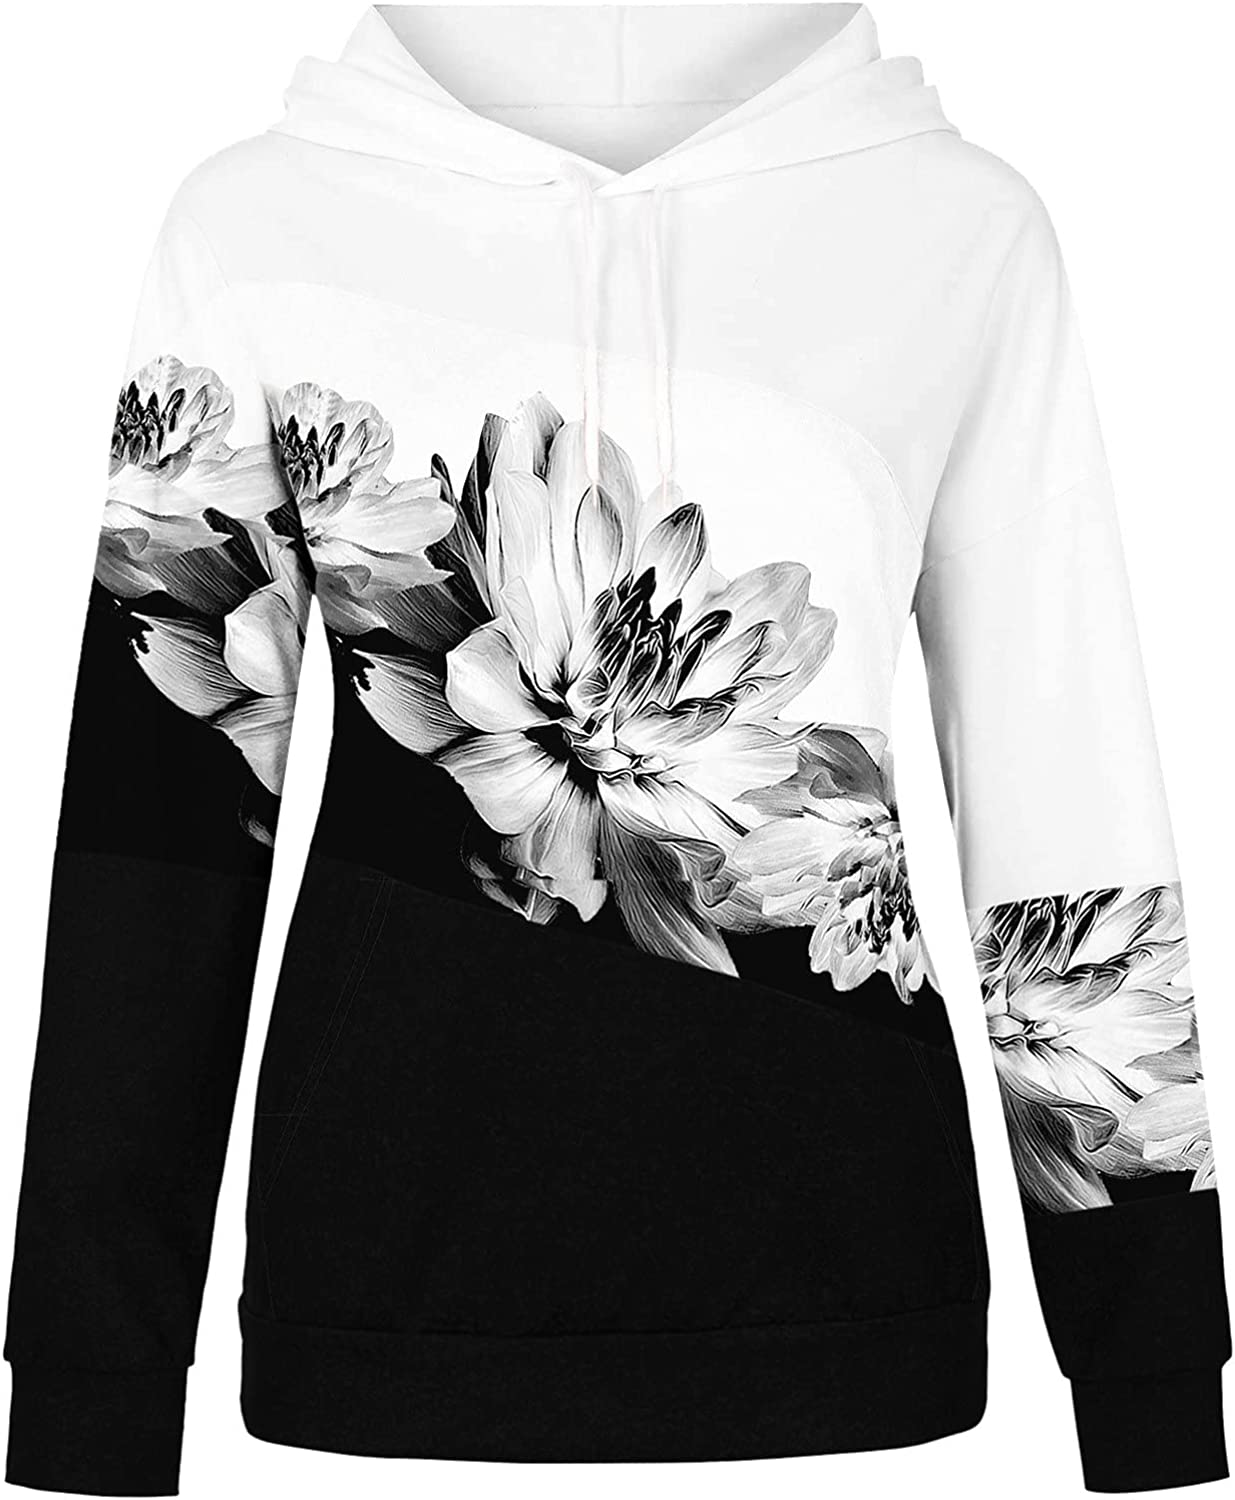 Women's Casual Long Sleeve Sweatshirt Drawstring Loose Pullover Tops With Pockets Lightweight Hoodies Sweaters Shirts